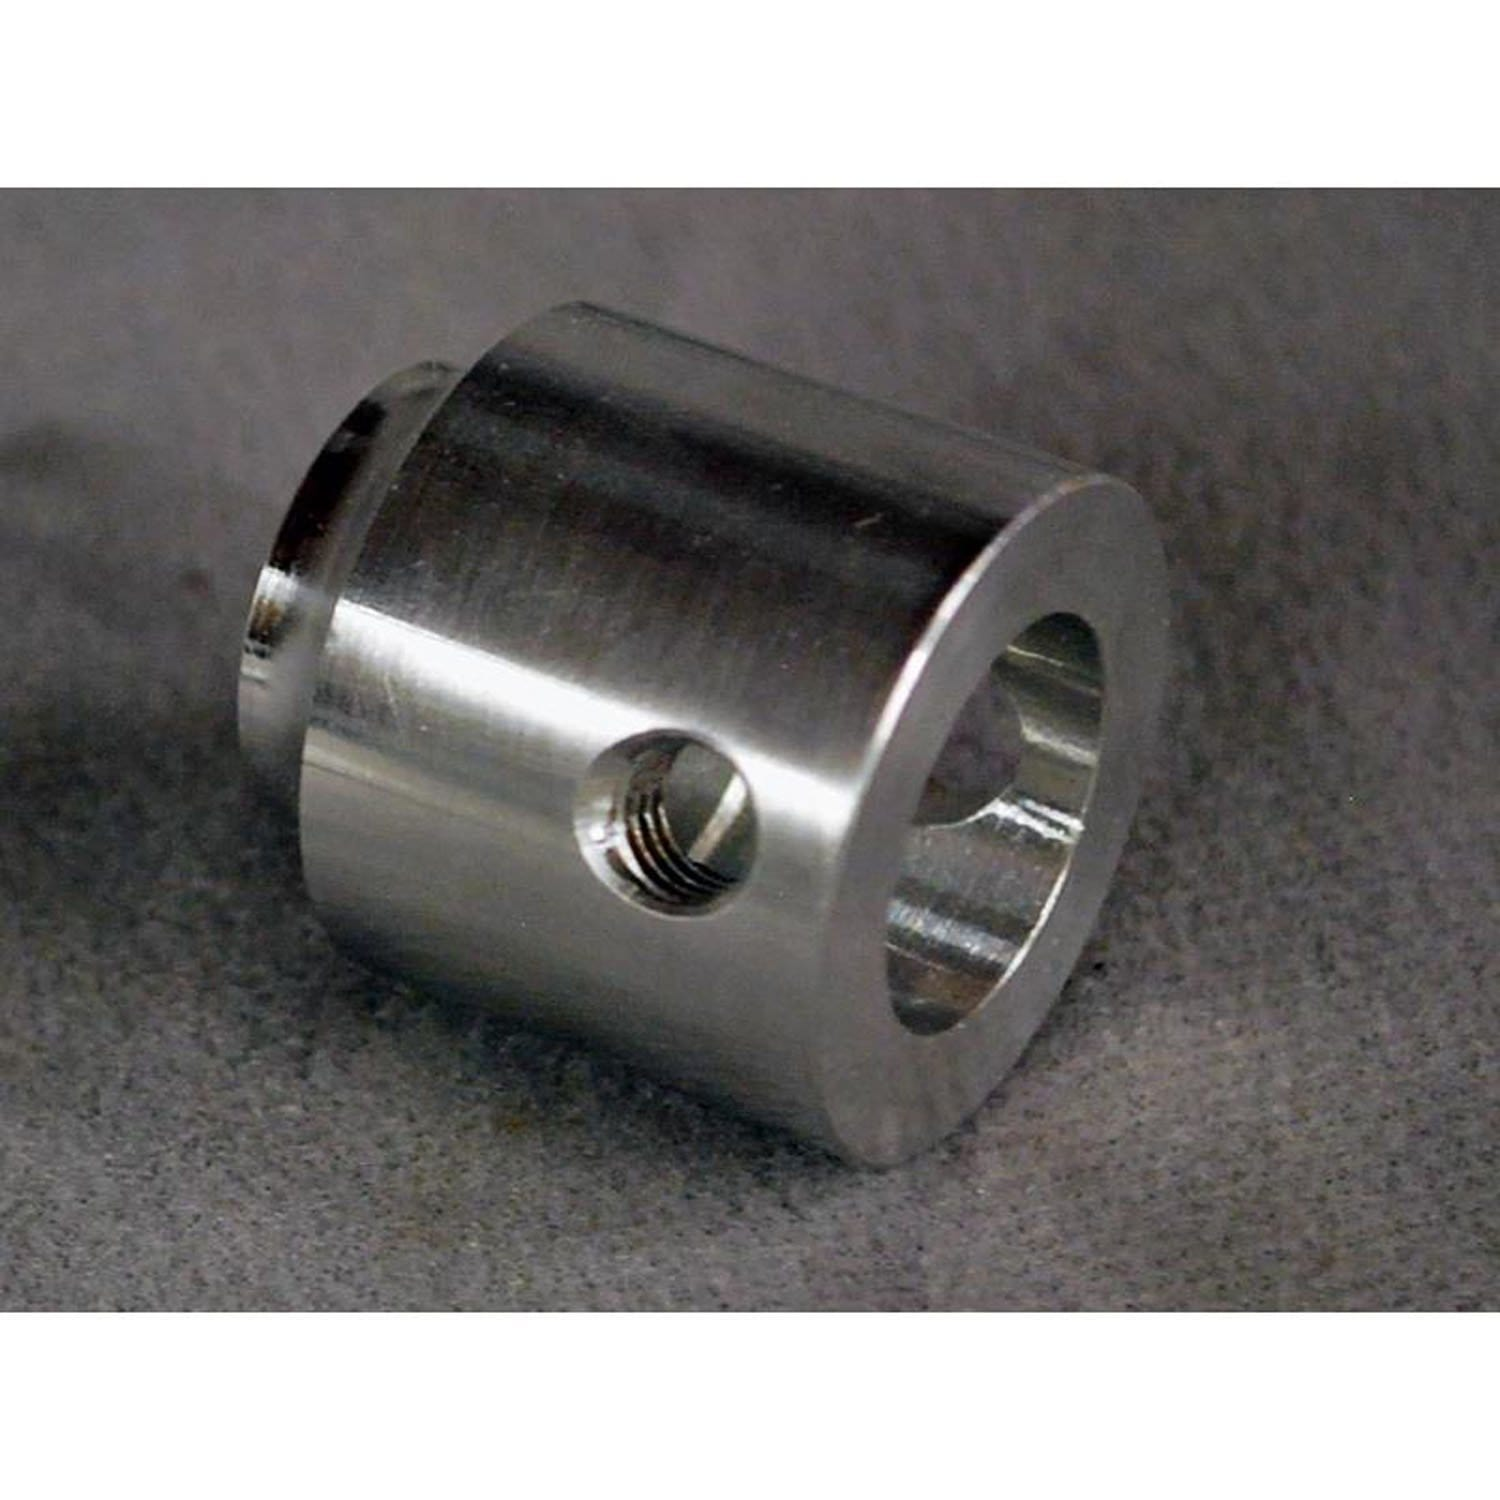 2007+ GSXR 1000 Slider Base RHS (no bolts/puck) - Woodcraft Technologies - Motorcycle Parts